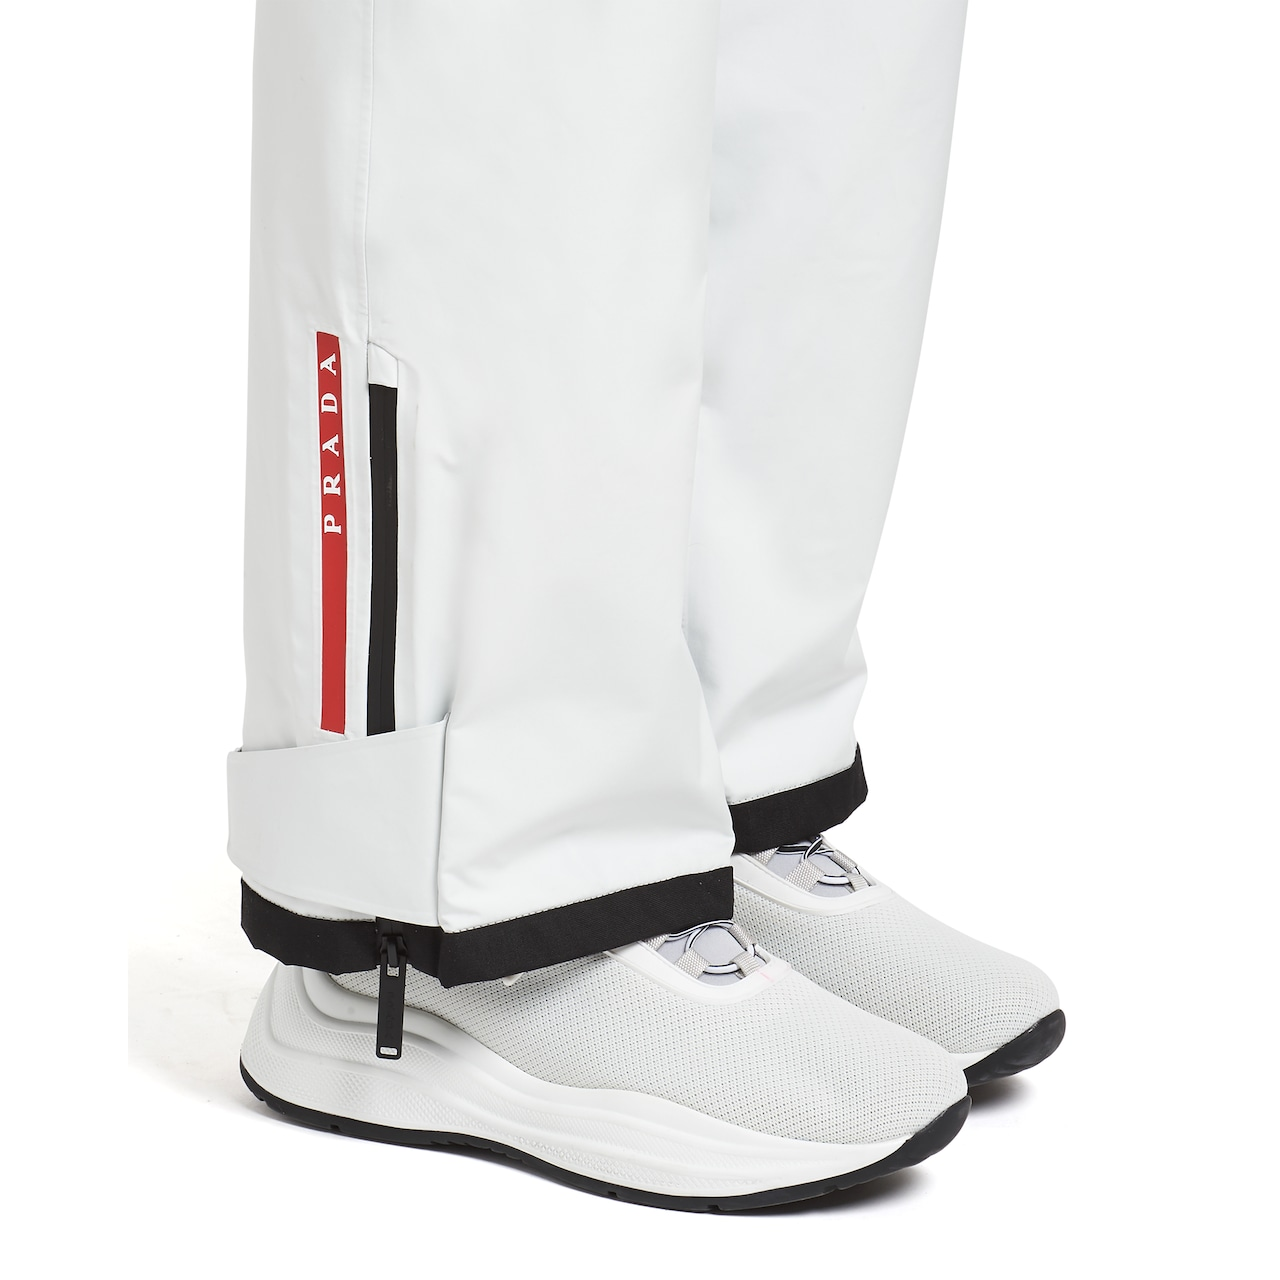 Prada LR-HX018 technical ski fabric trousers 5